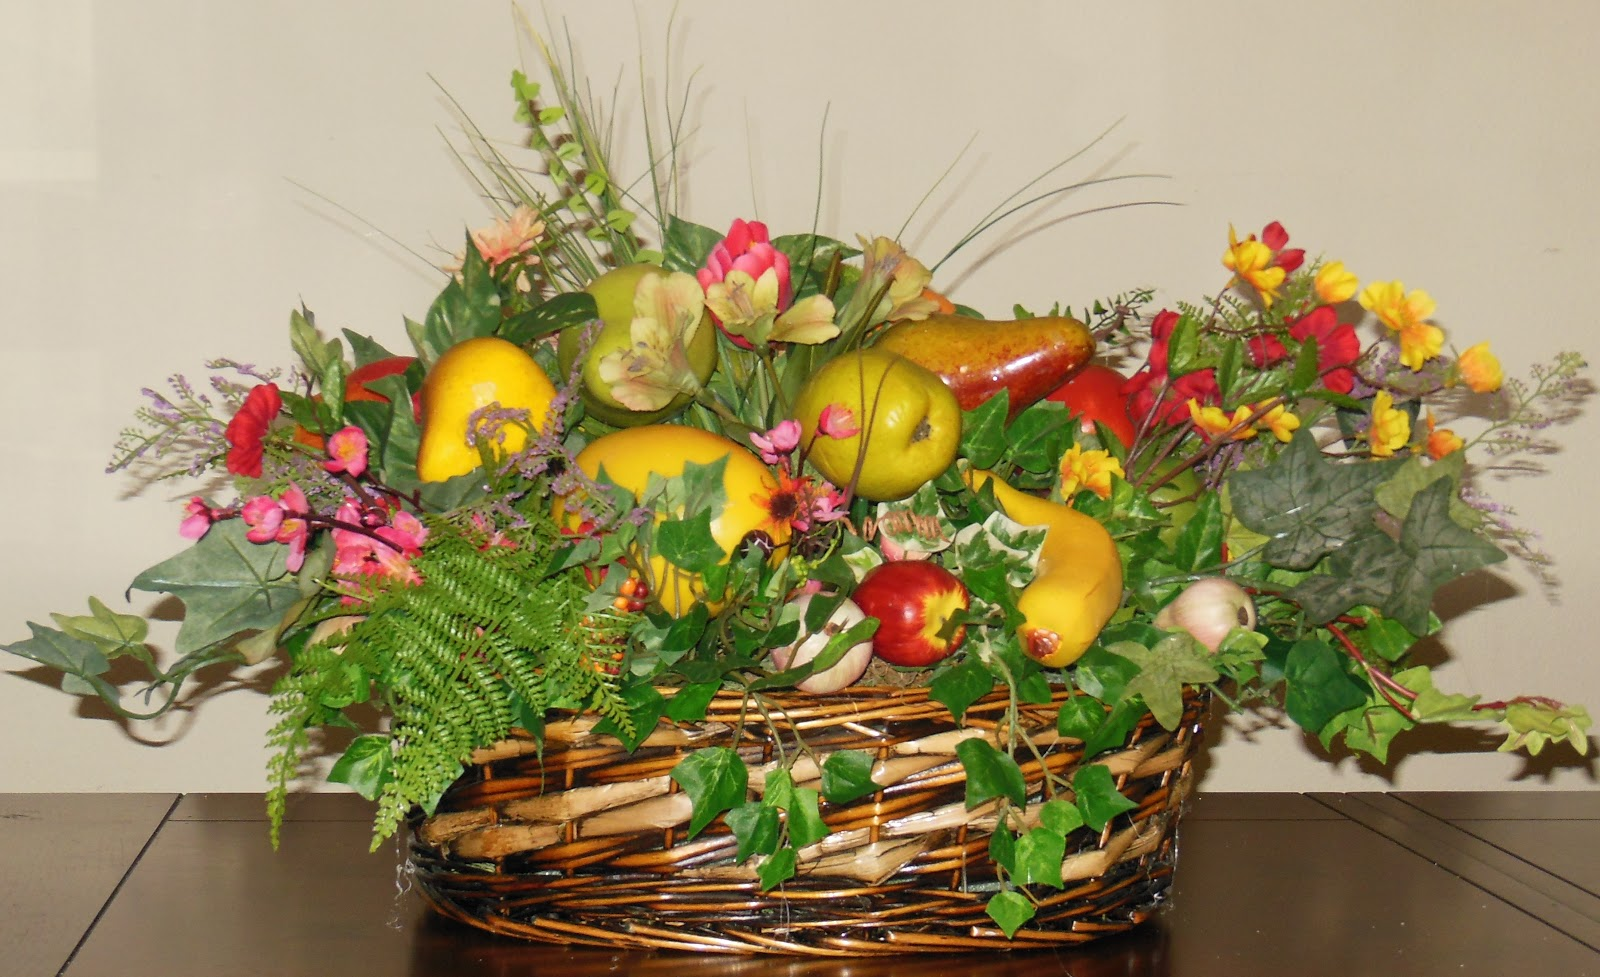 Ana silk flowers how to use fruit in artificial floral